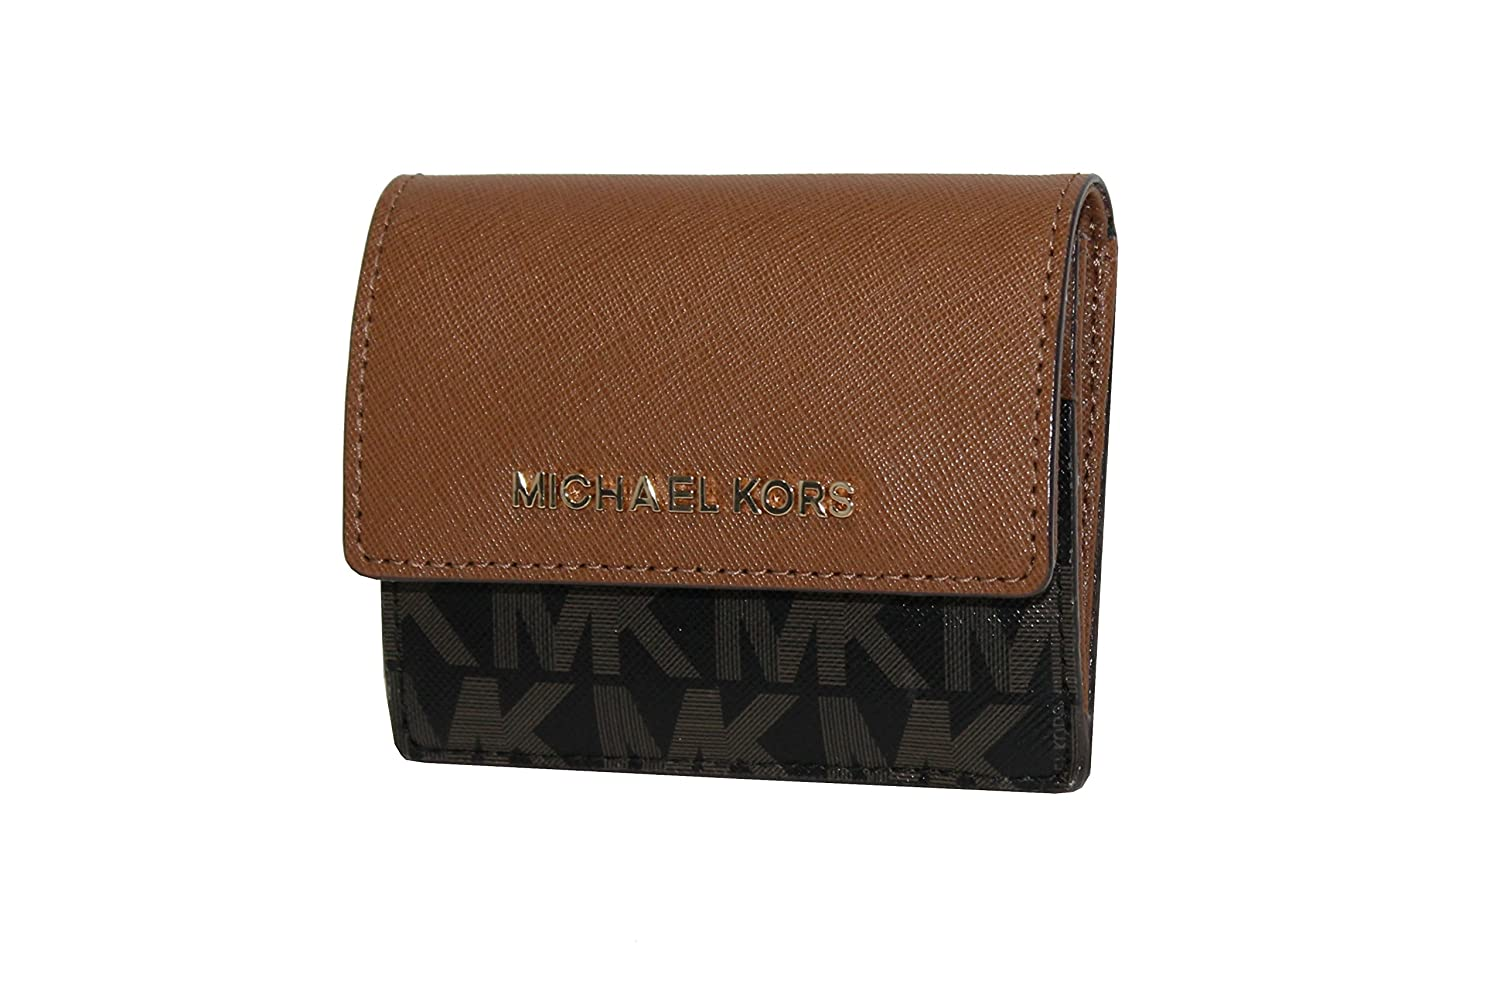 bdf2a19705a7 MICHAEL Michael Kors Women s Jet Set Travel Card Case ID holder Printed  Leather (Black darkBrown) at Amazon Women s Clothing store